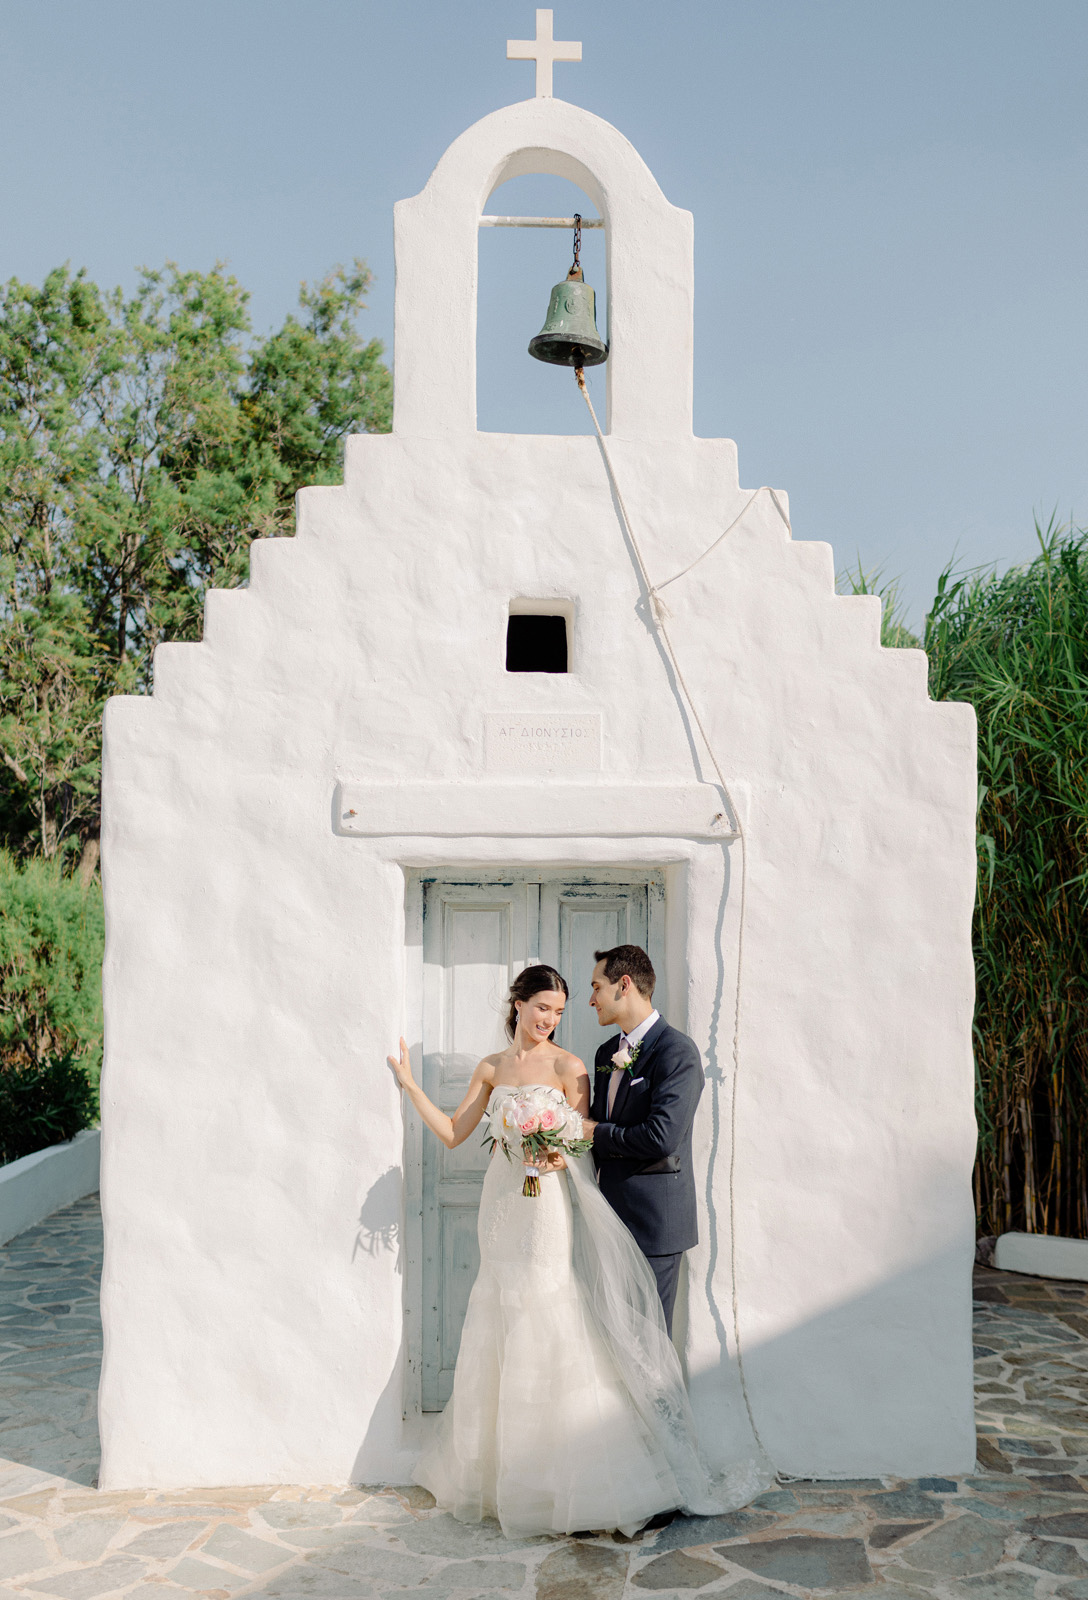 Athens wedding photographer captures couple in front of white washed chapel hugging